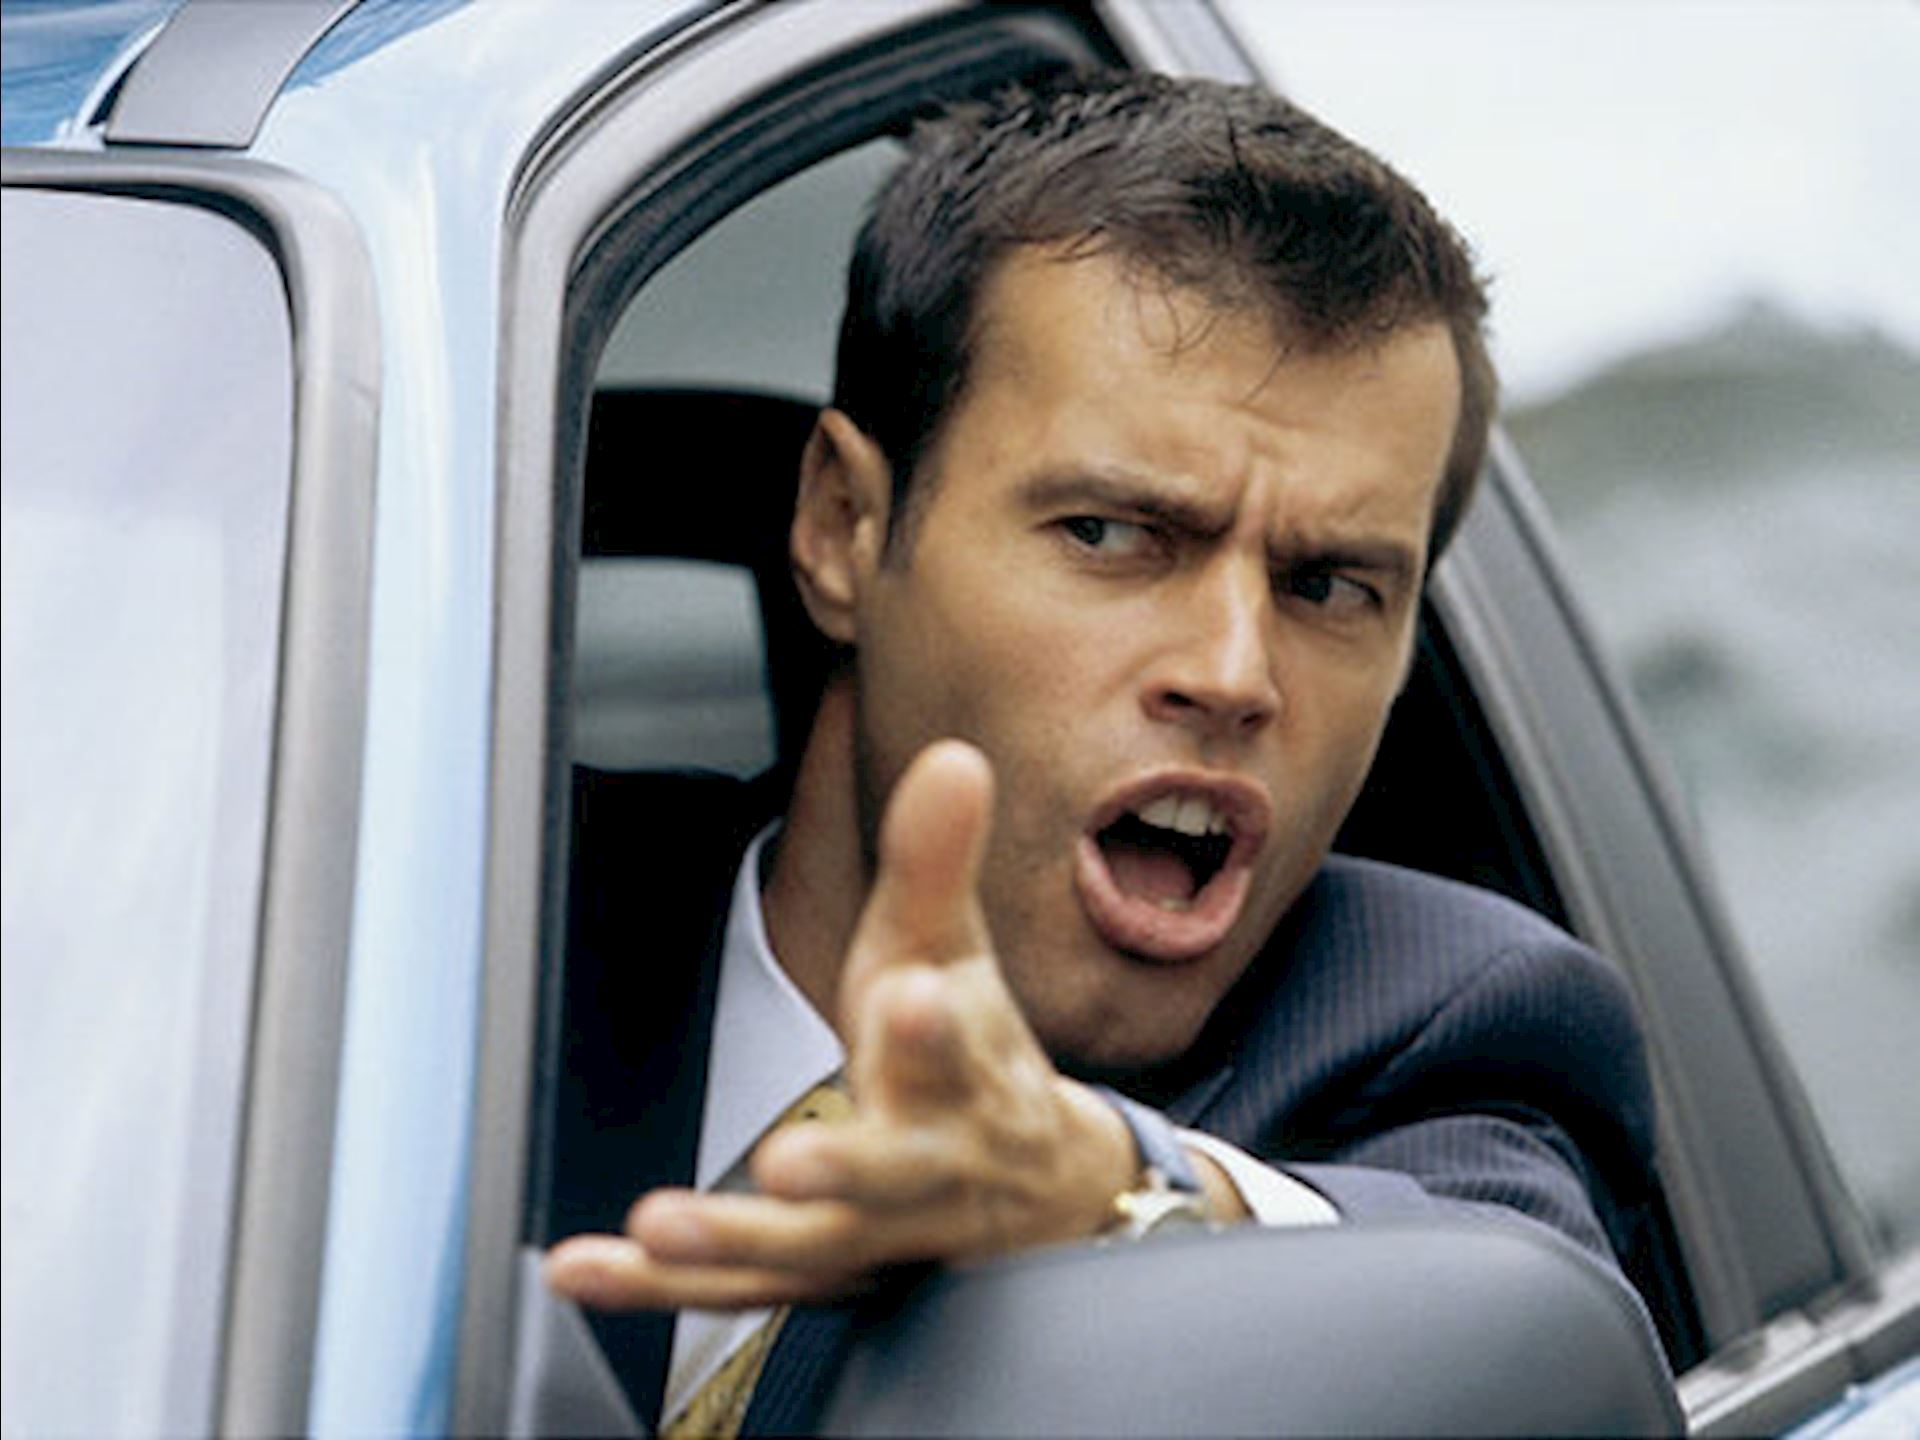 Tips To Stay Calm And Avoid Road Rage